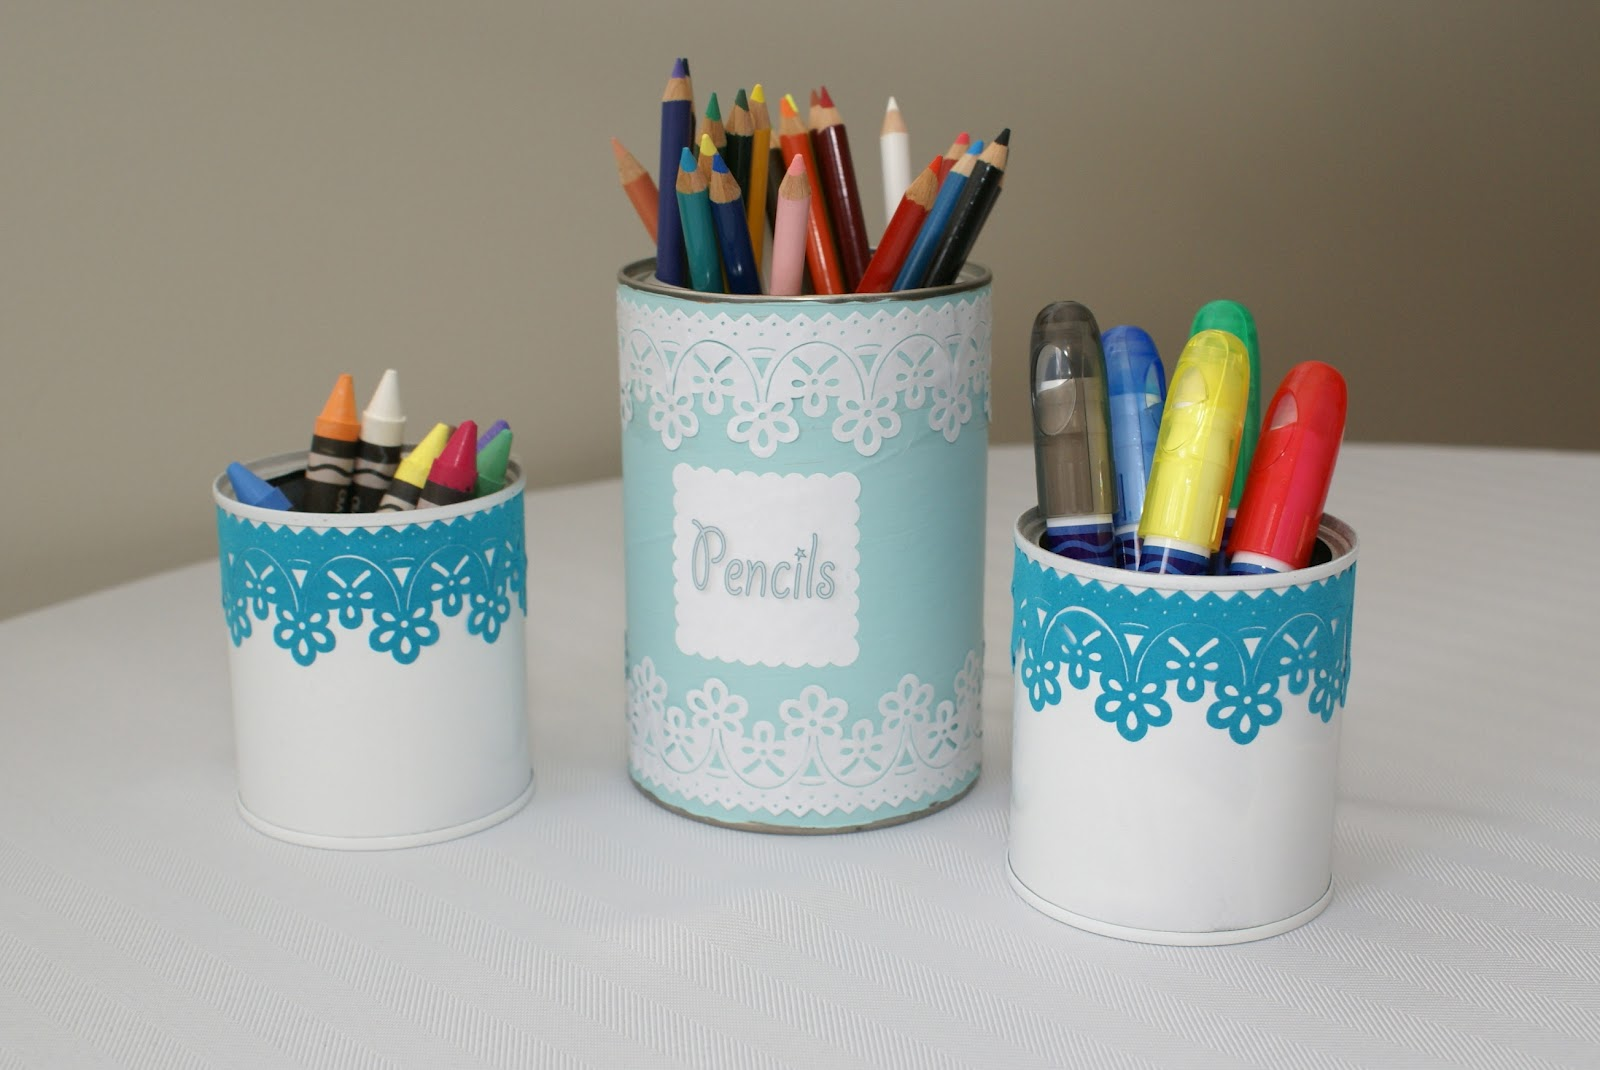 the cozy condo decorating cans with scrapbooking